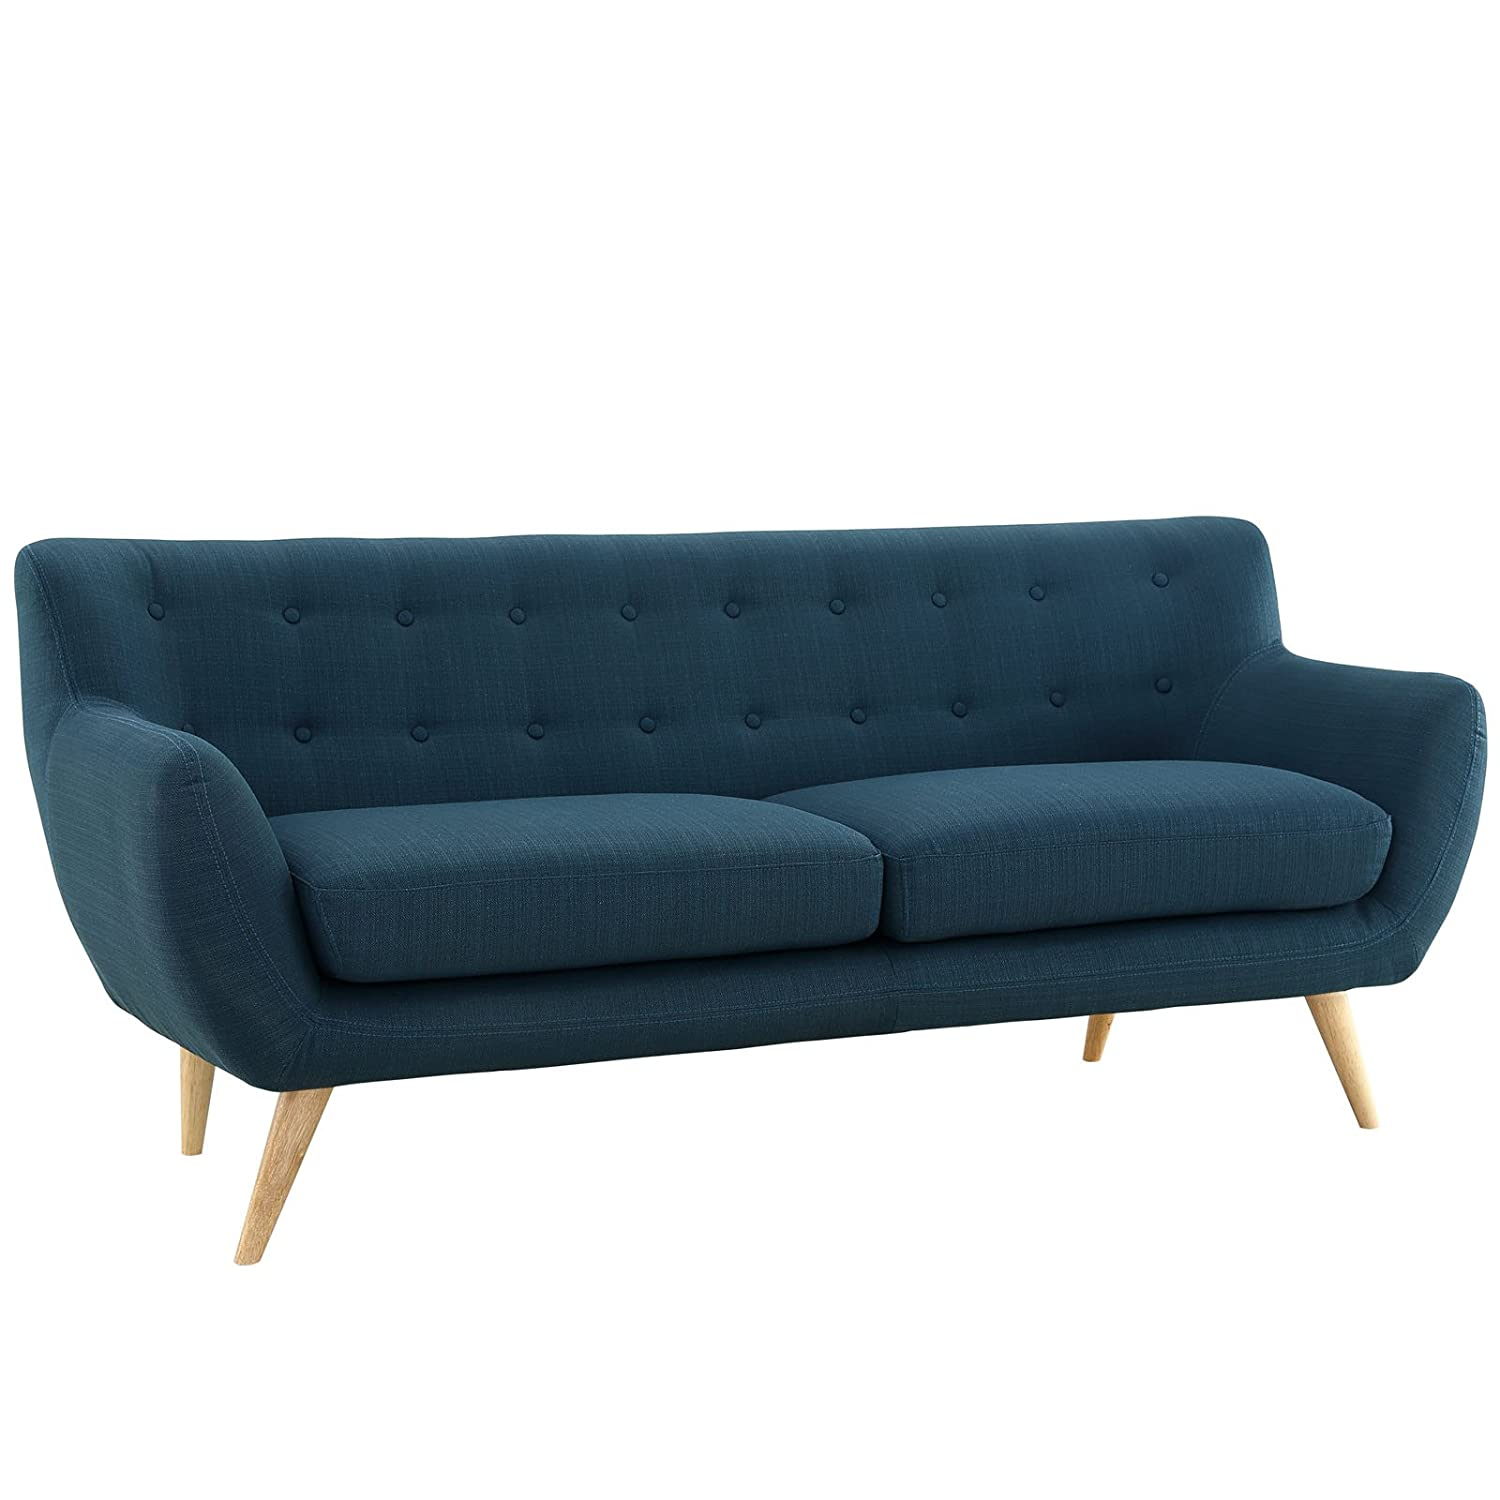 Ordinaire Amazon.com: Modway Remark Mid Century Modern Sofa With Upholstered Fabric  In Azure: Kitchen U0026 Dining